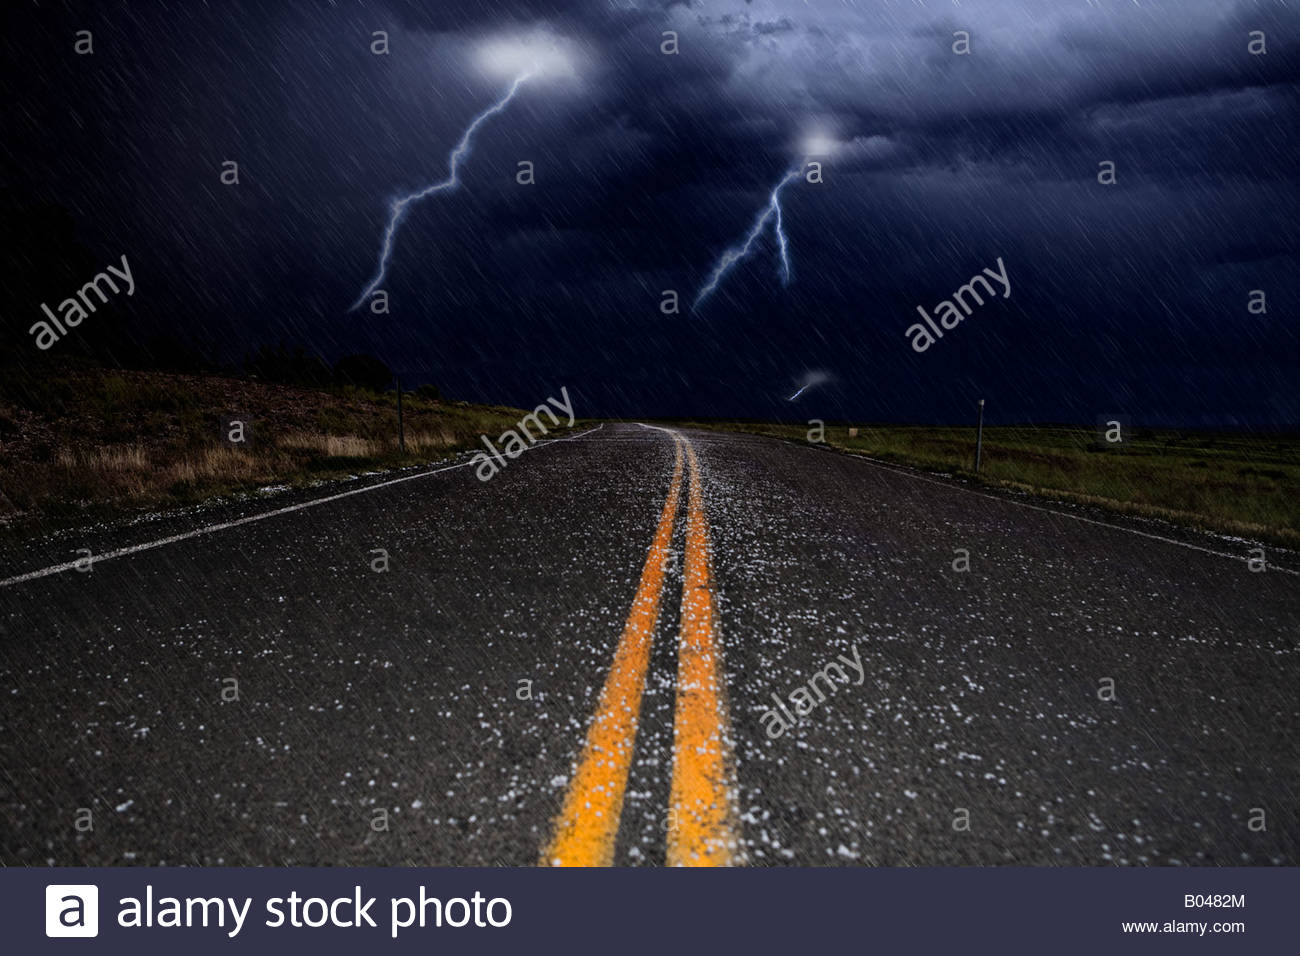 Lightning and hail on a road - Stock Image